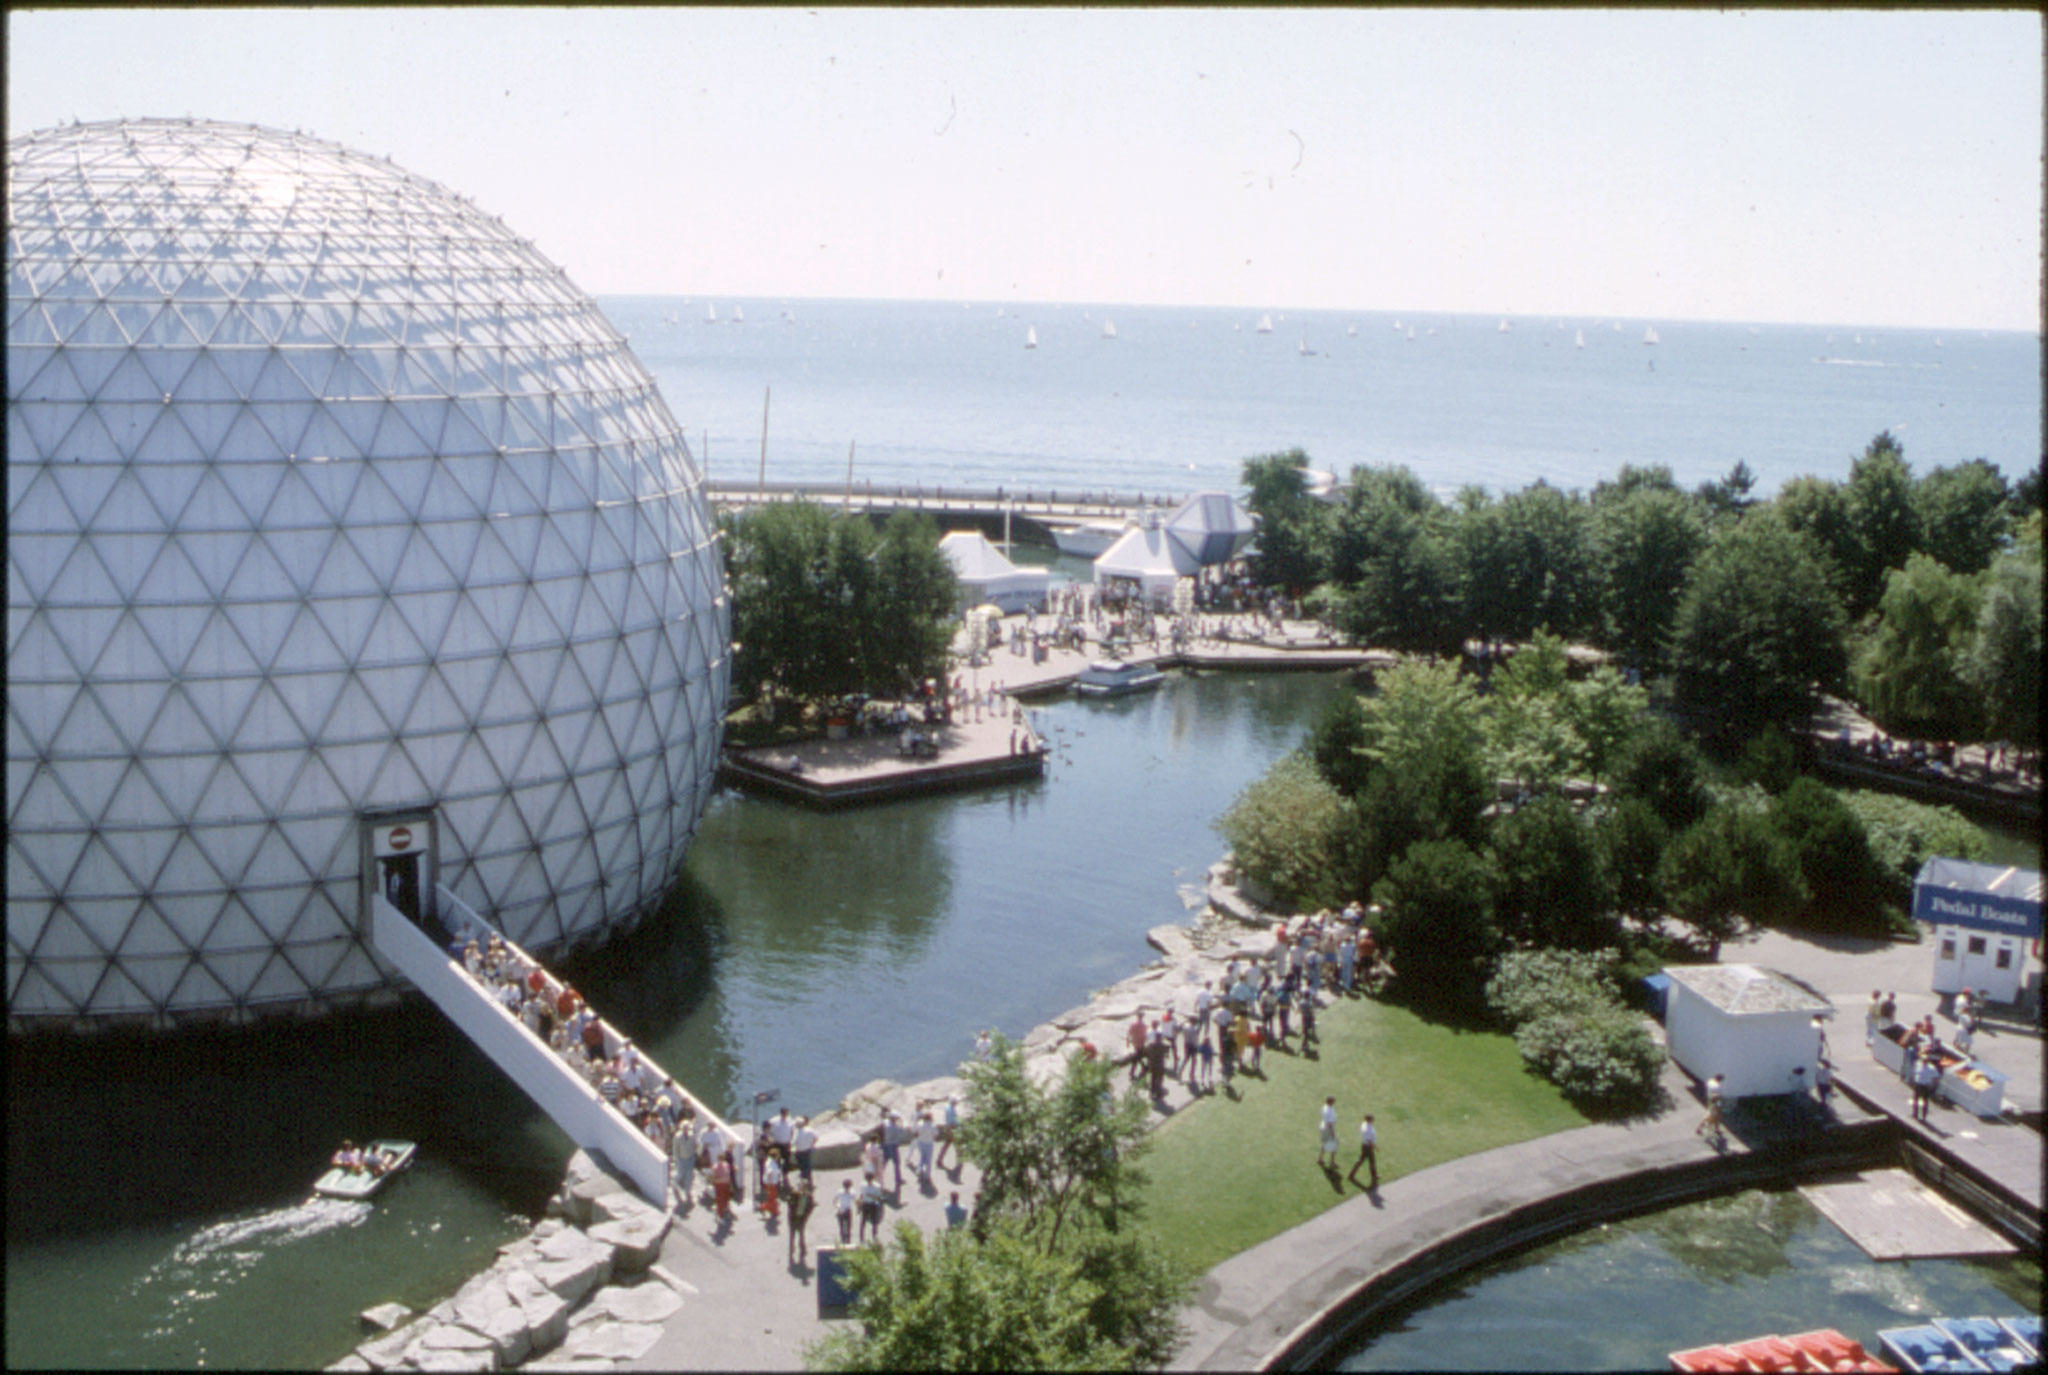 The Cinesphere at Ontario Place, circa 1970.  Courtesy of The Archives of Ontario